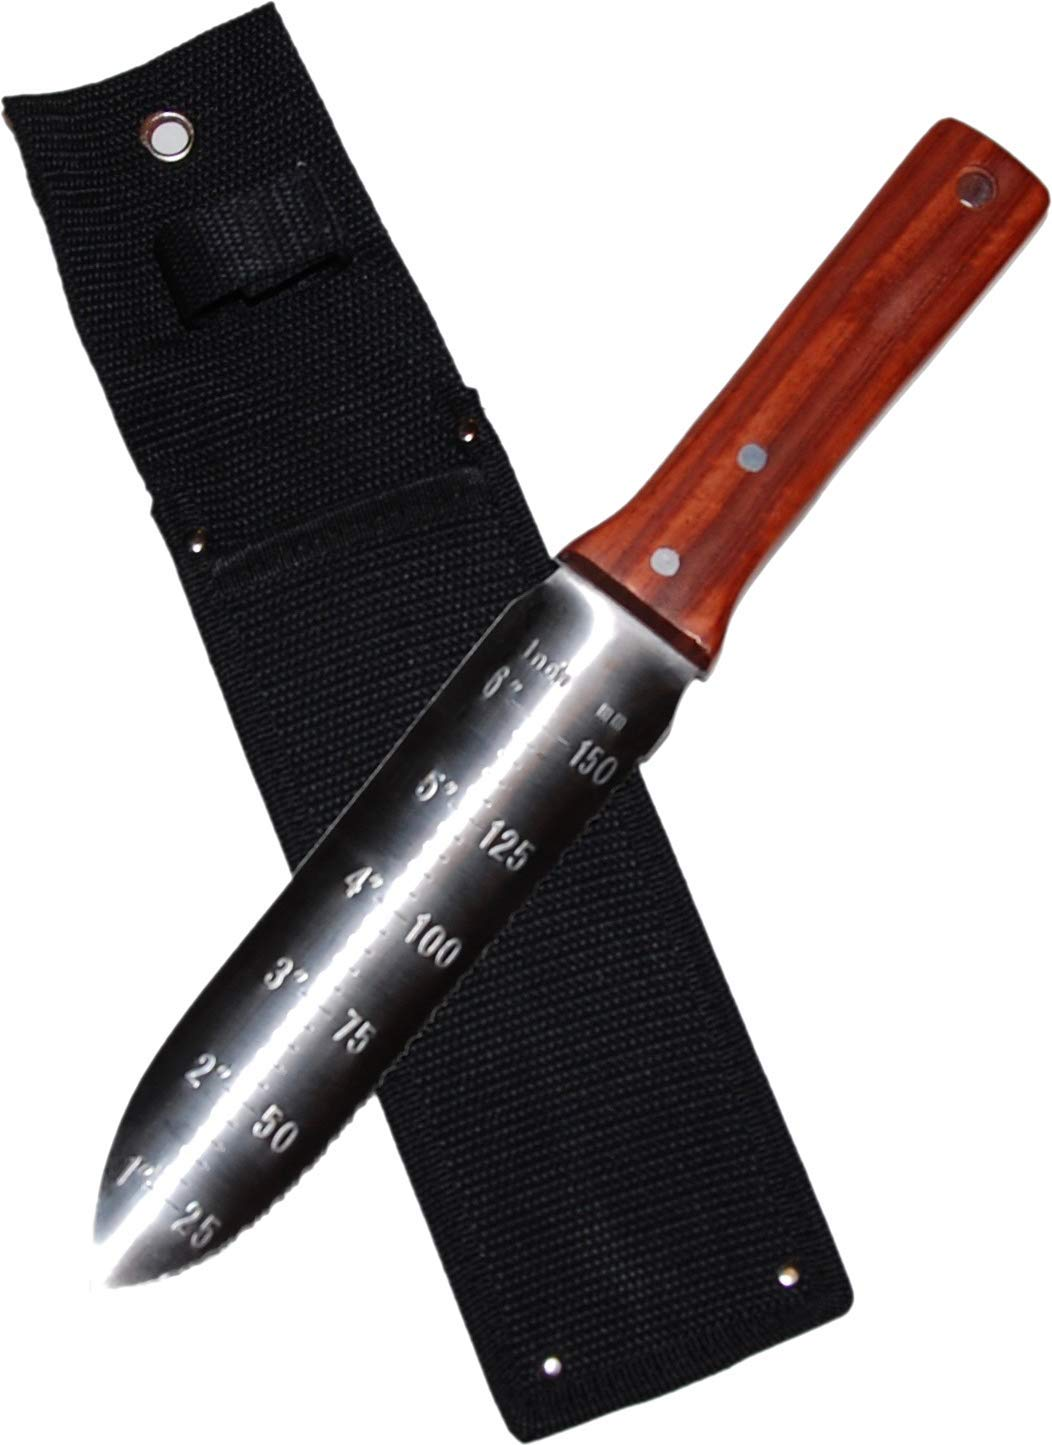 12'' Hori Hori Japanese Garden Knife with 7'' Stainless Steel Blade plus Protective Sheath. Great gift for Gardeners and Campers! Multi-purpose tool ideal for Gardening, Digging, Camping, & Landscaping